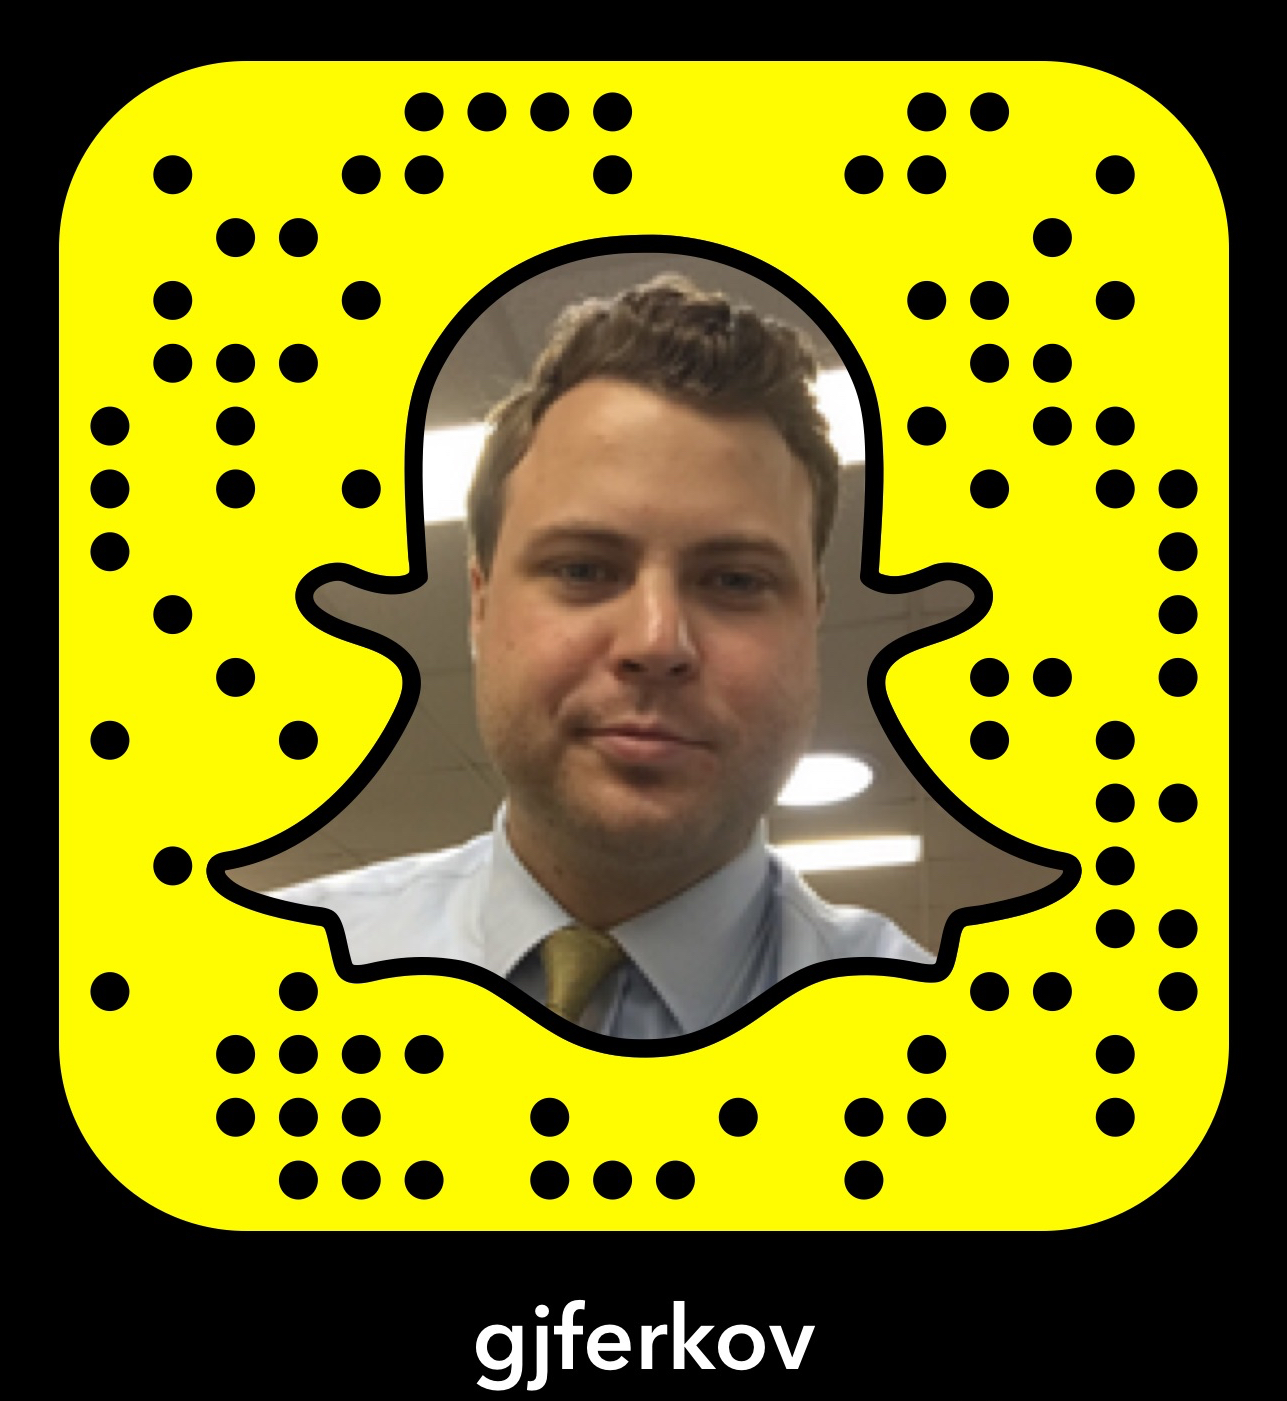 Follow George Ferko on Snapchat